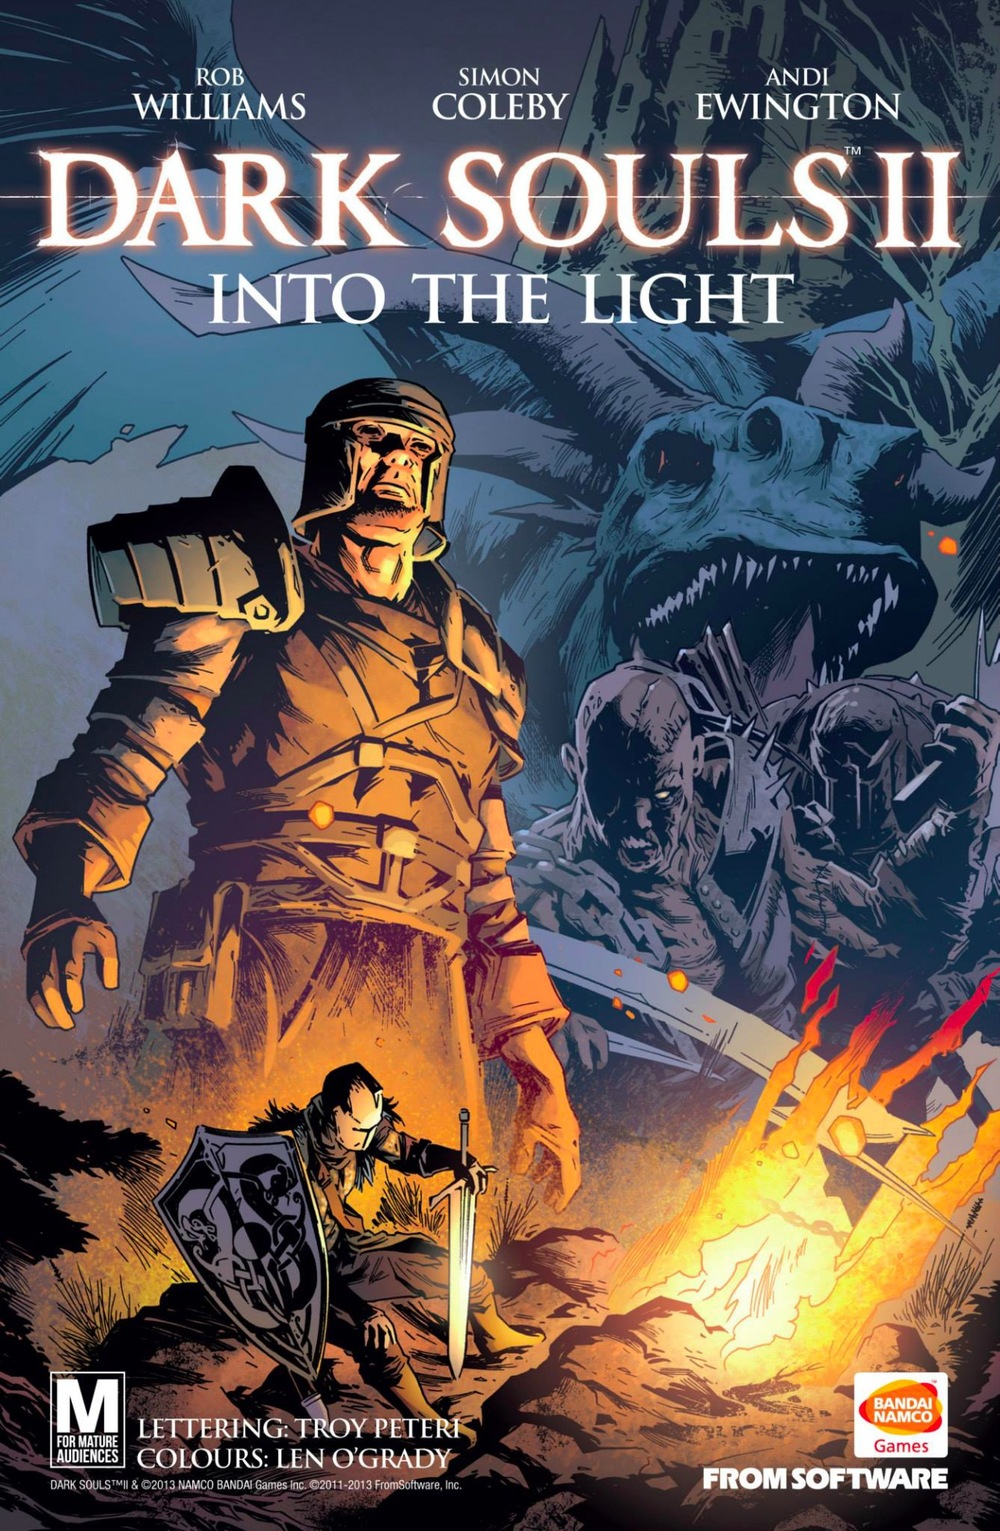 dark-souls-2-into-light-comic-cover.jpg